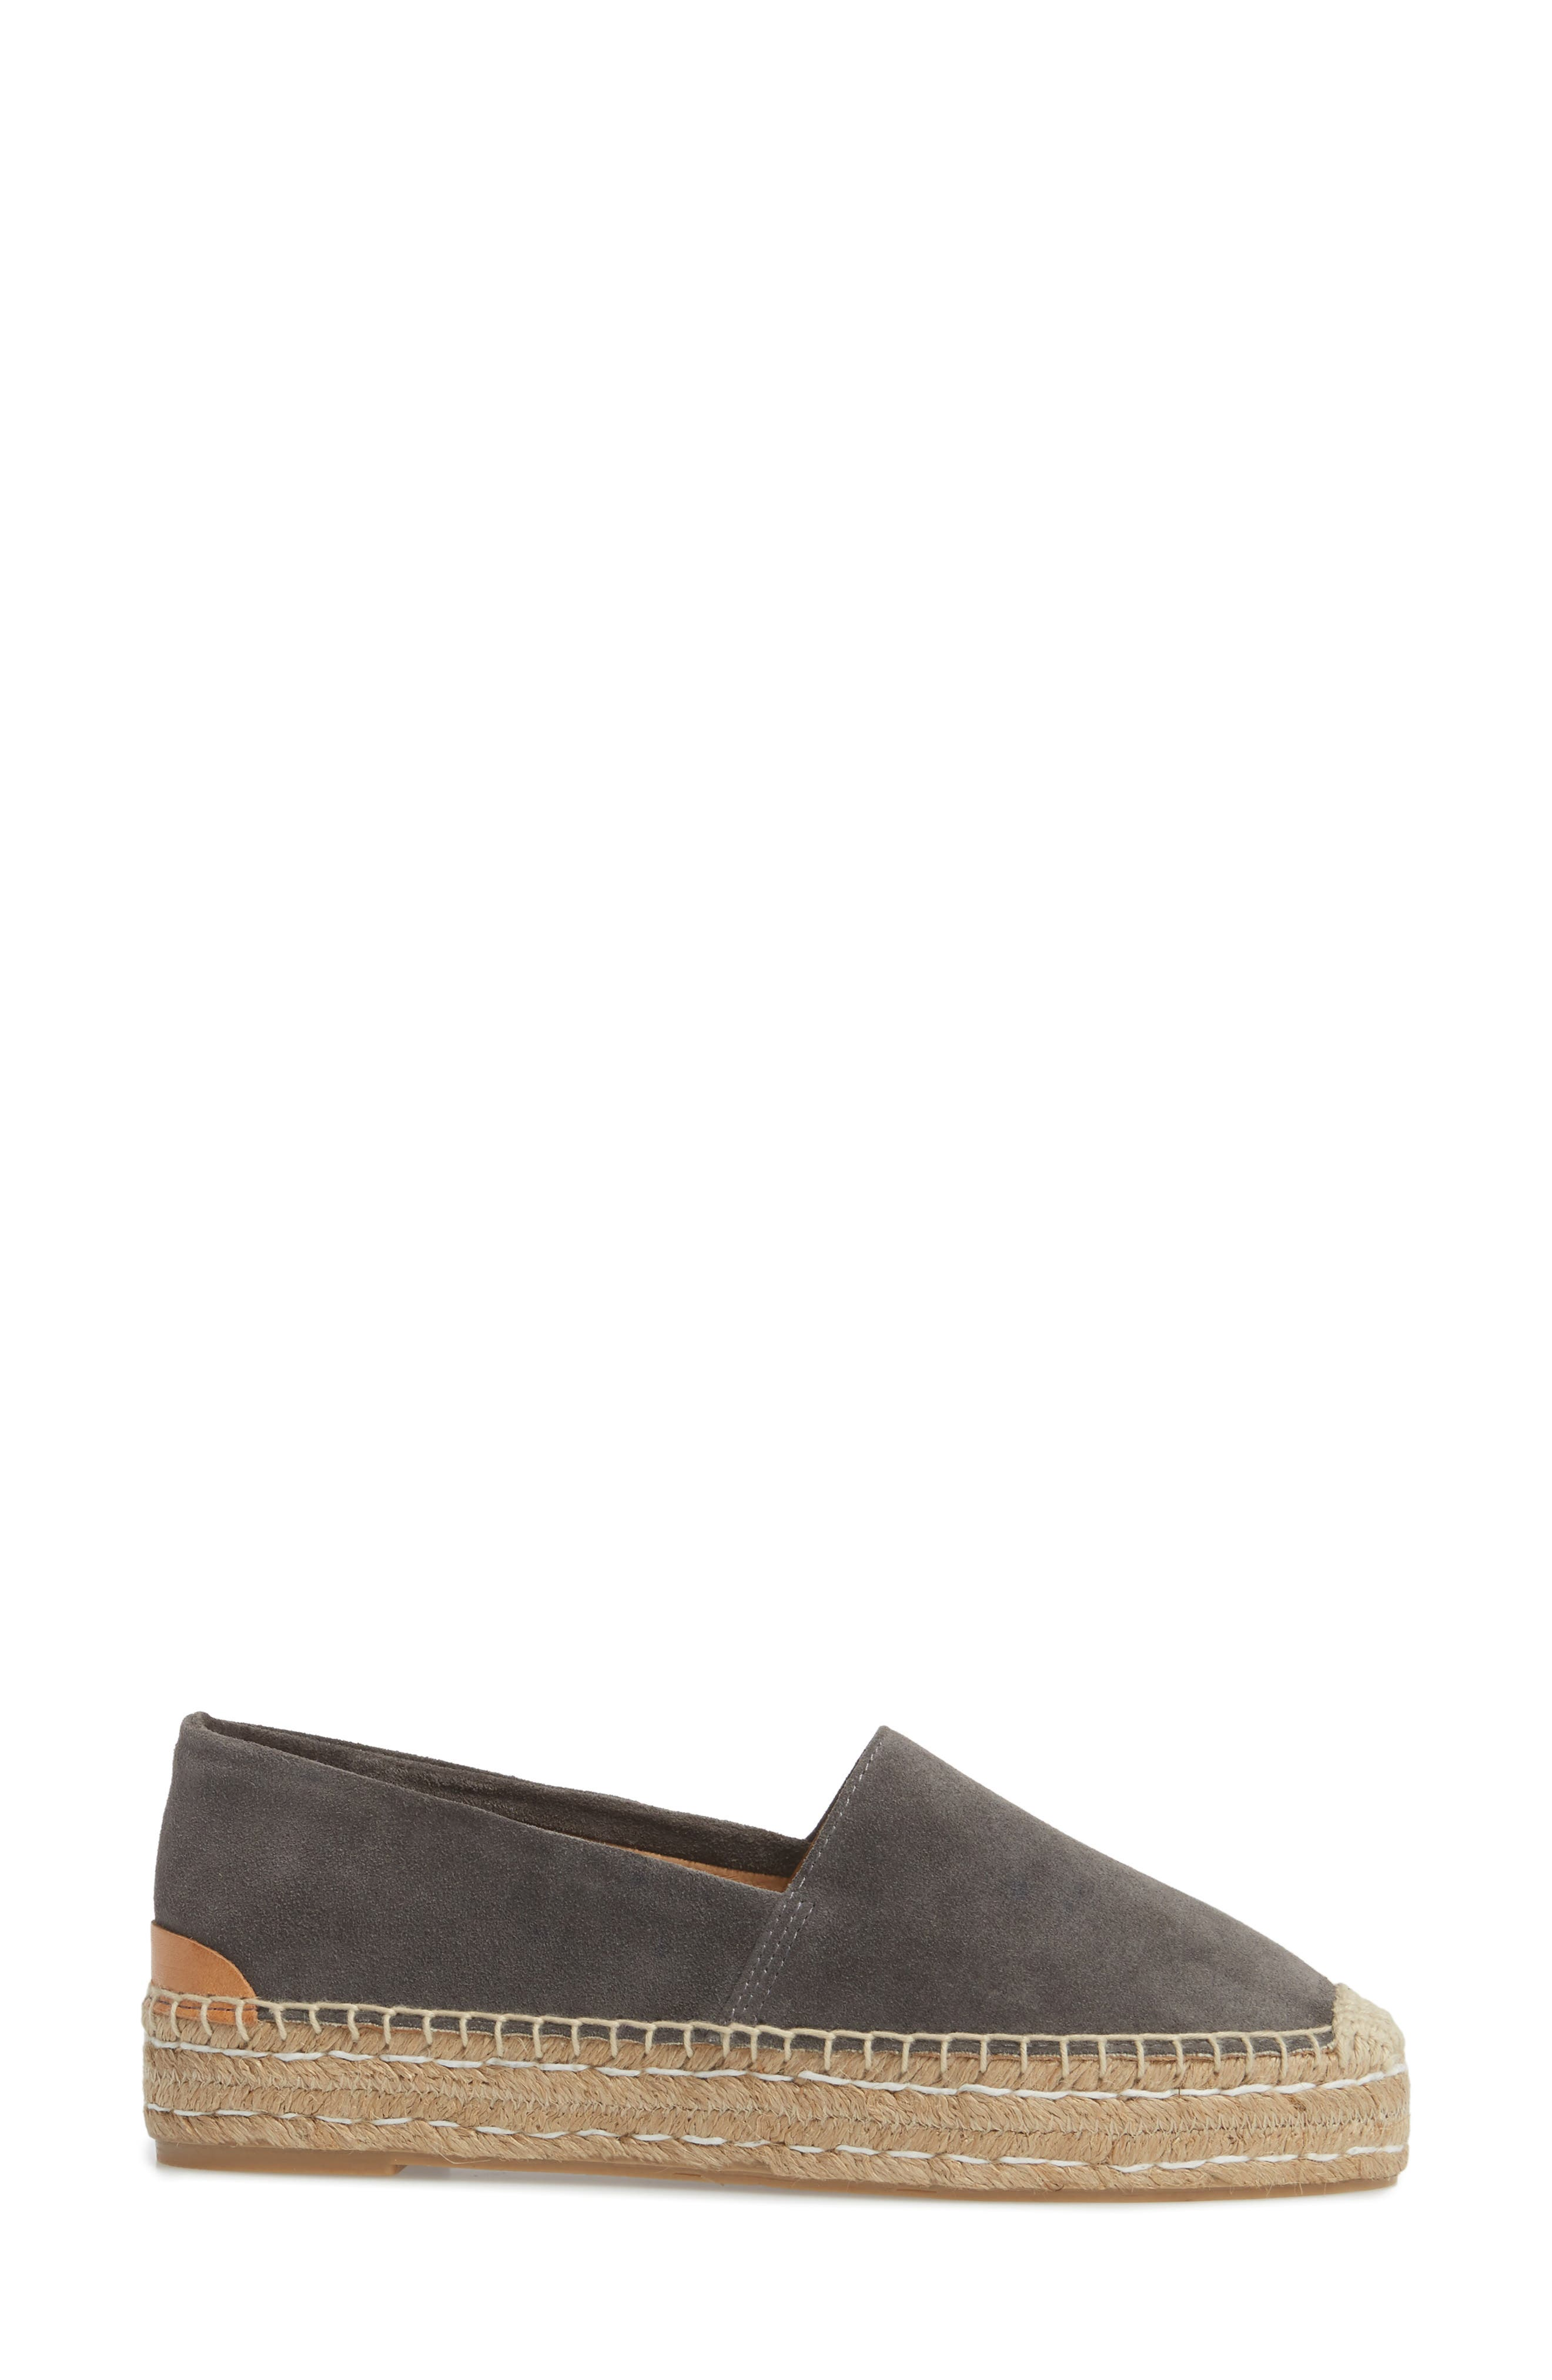 Abigail Espadrille Slip-On,                             Alternate thumbnail 3, color,                             CHARCOAL SUEDE